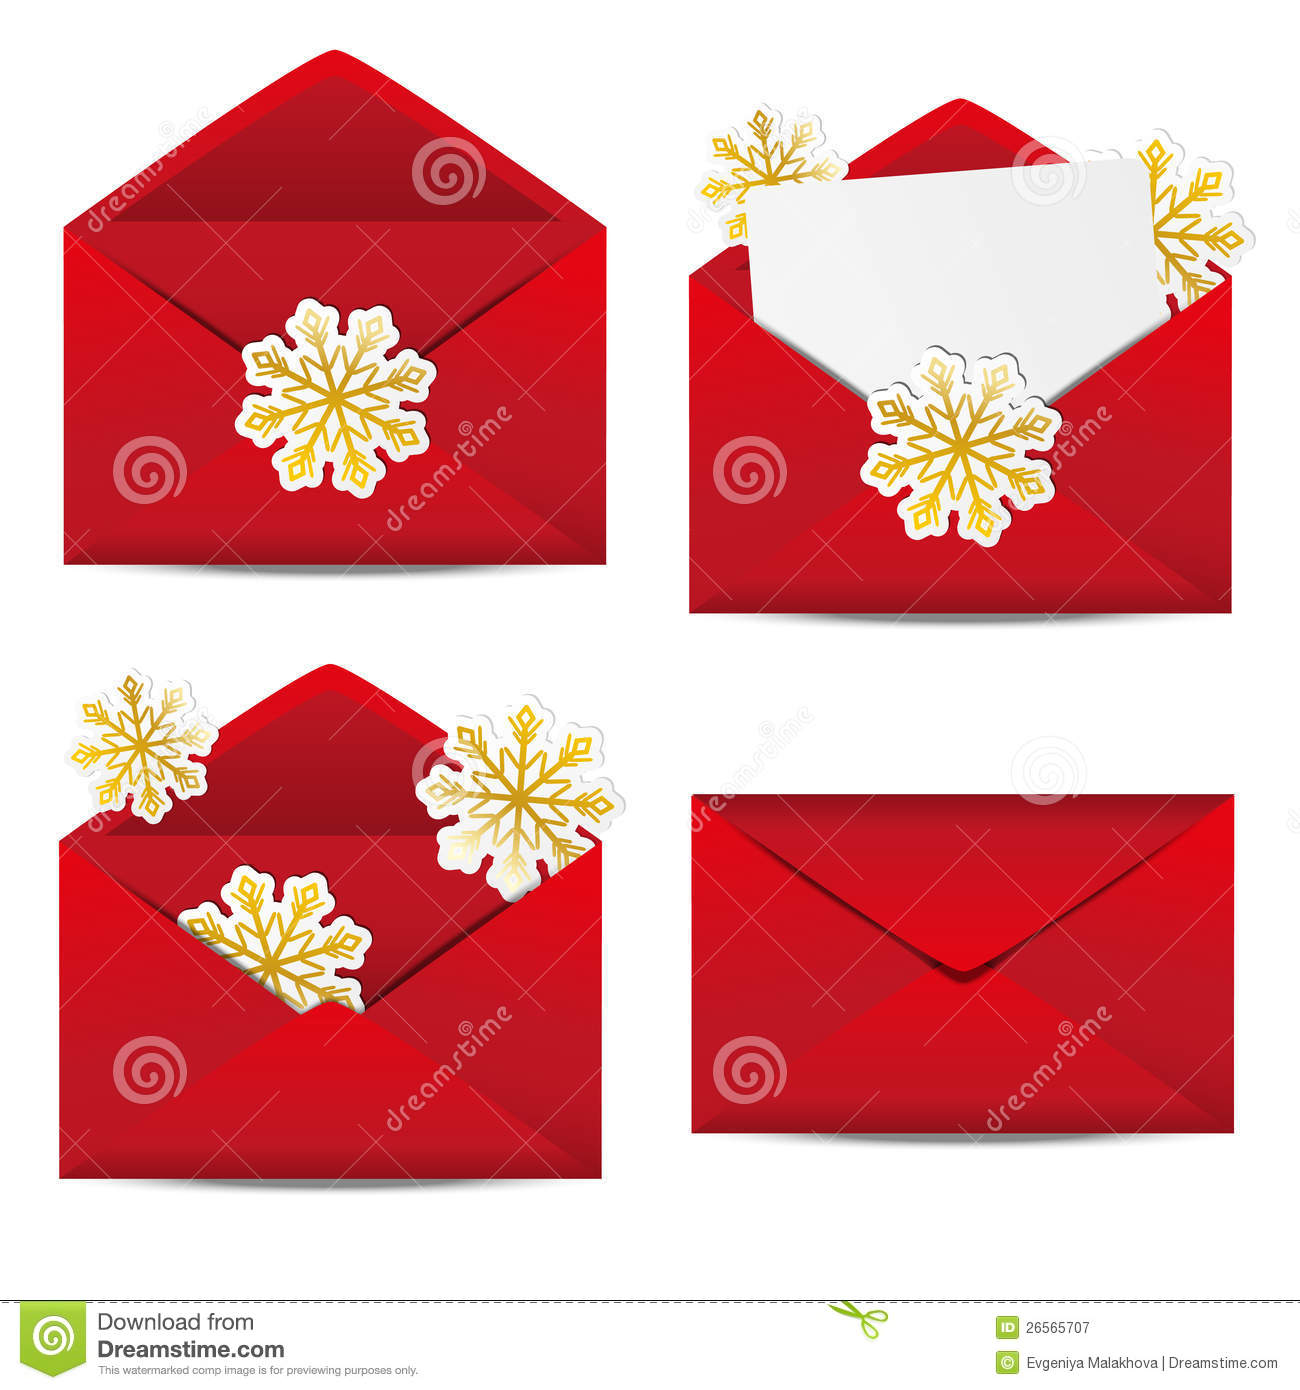 thumb cut envelopes 4.25 x 6